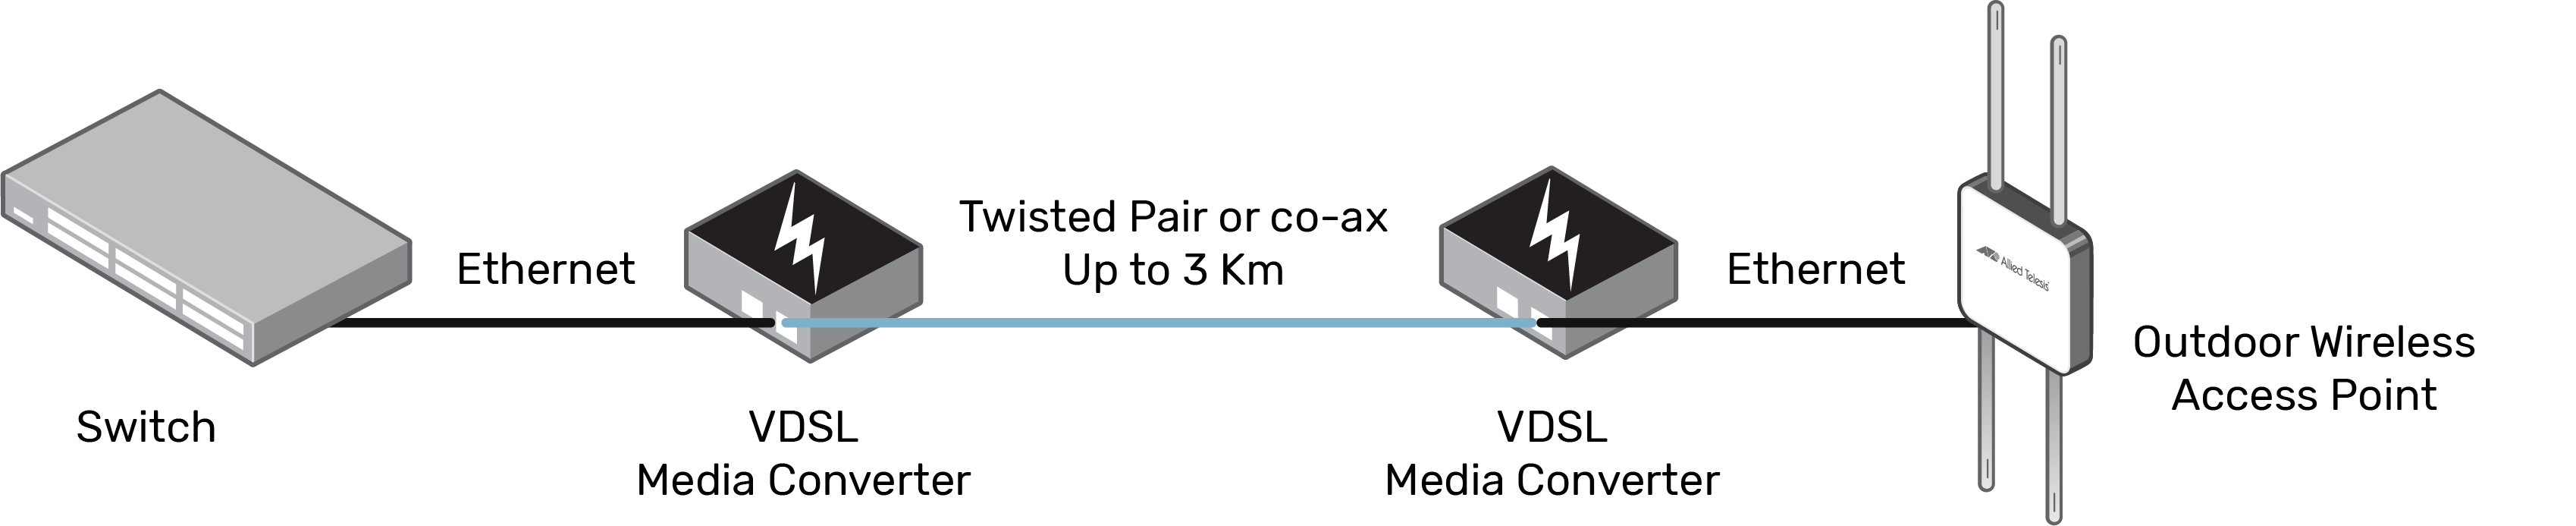 Media converters used in pairs